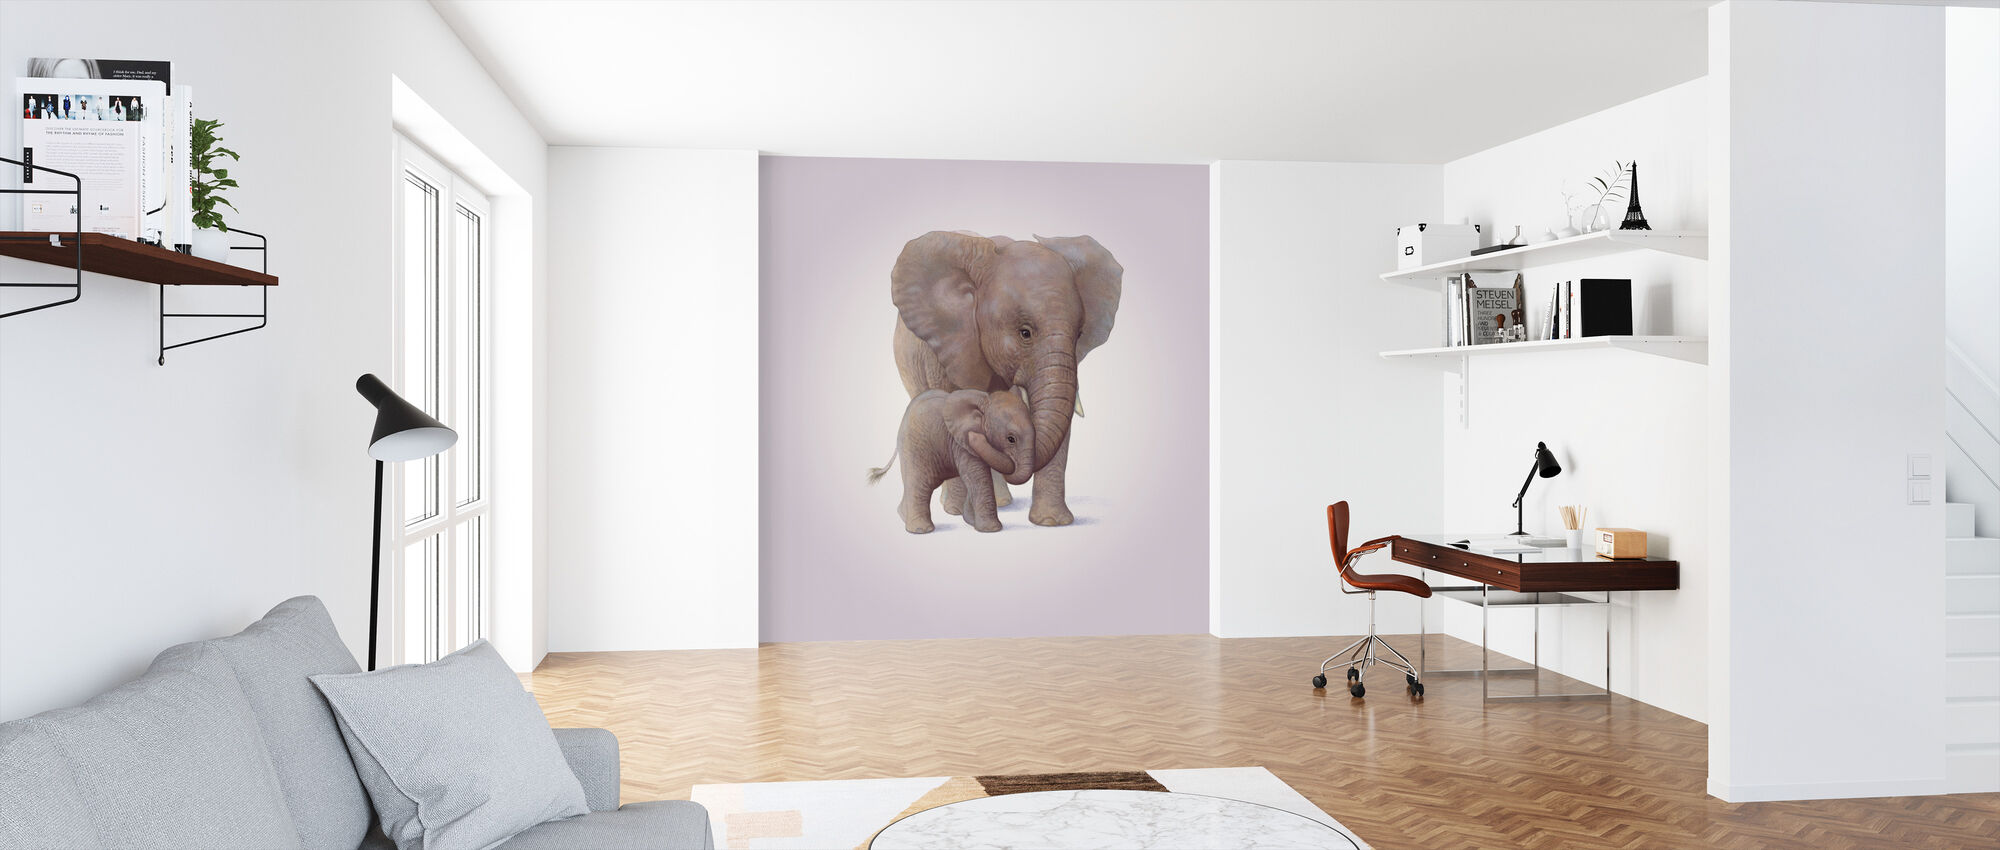 Elephant Calf - Wallpaper - Office